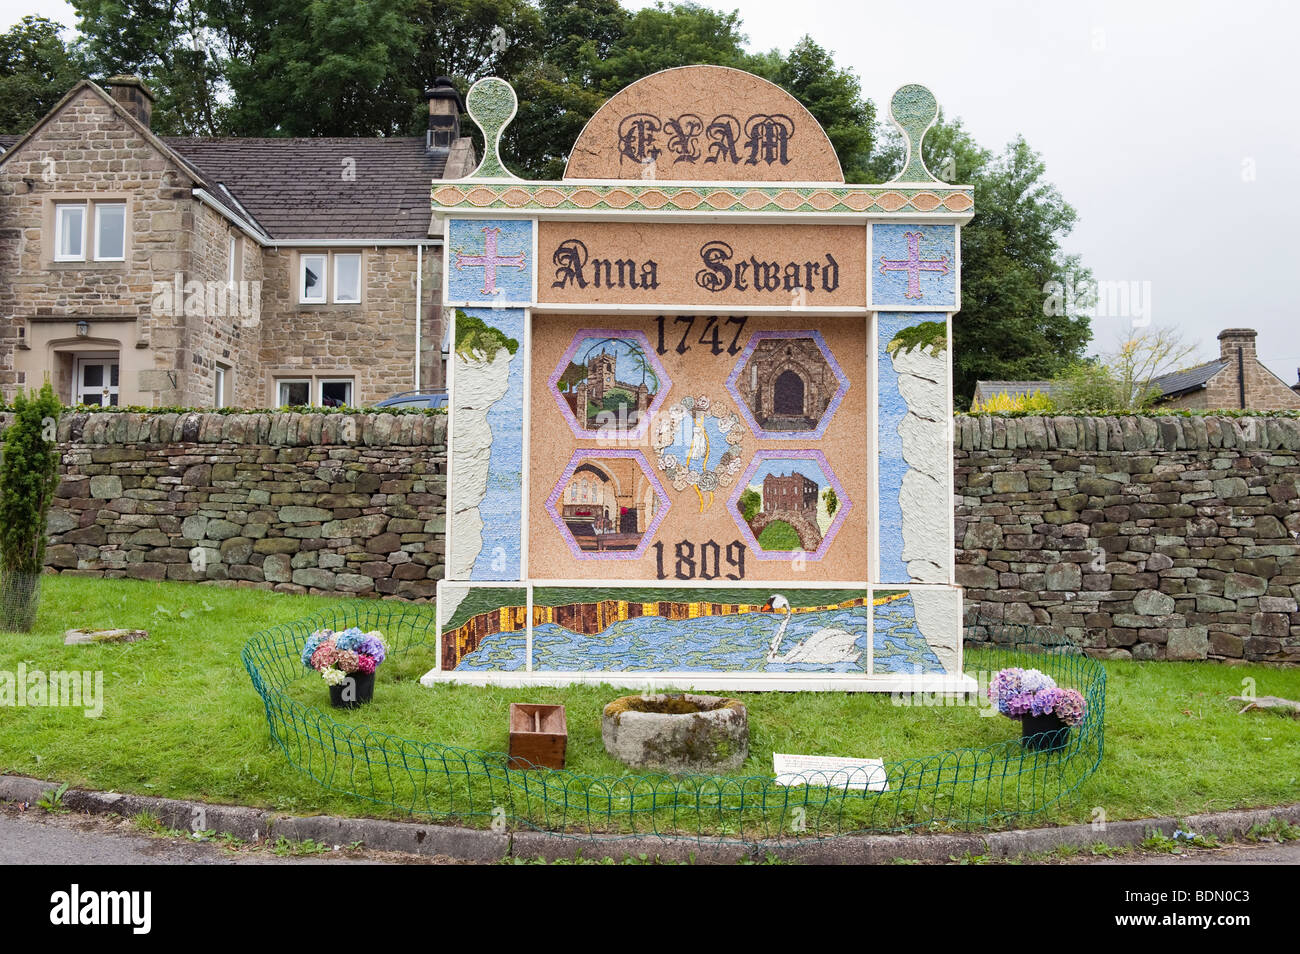 2009 'Well Dressing' in Eyam, 'Peak District' ,Derbyshire,England - Stock Image